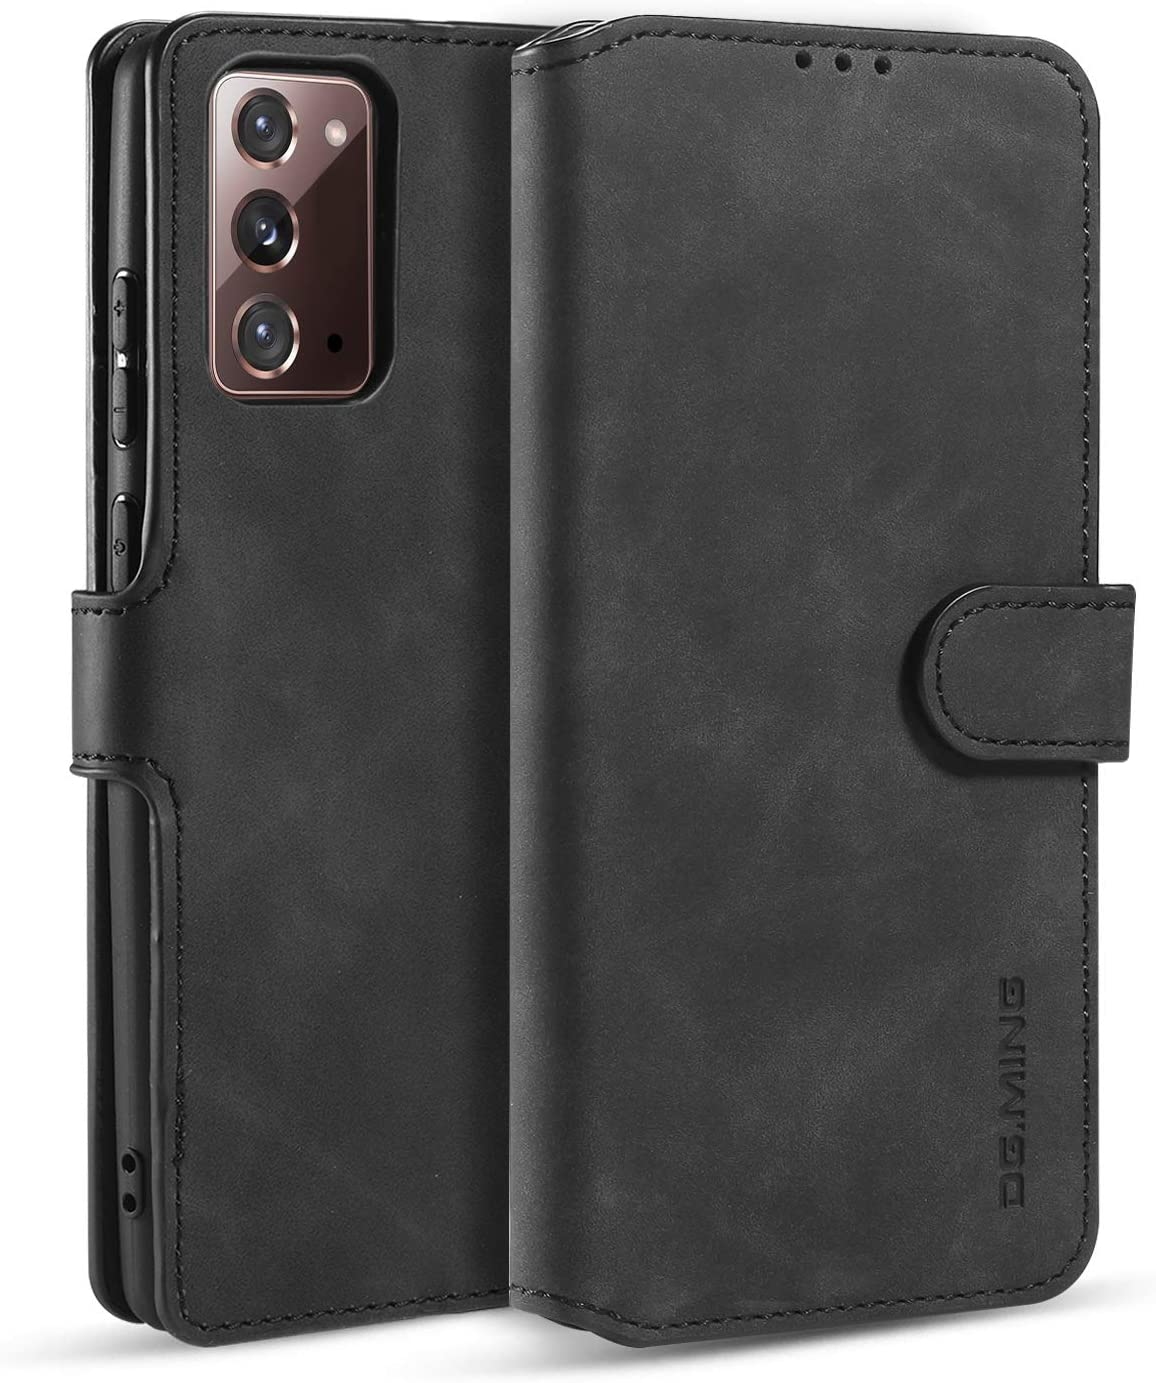 DG.MING Wallet Case for Huawei Nova 5i, Premium Leather Wallet Phone Case Vintage Leather with Viewing Stand & 3 Card Holder Flip Folio Cover with Card Slot